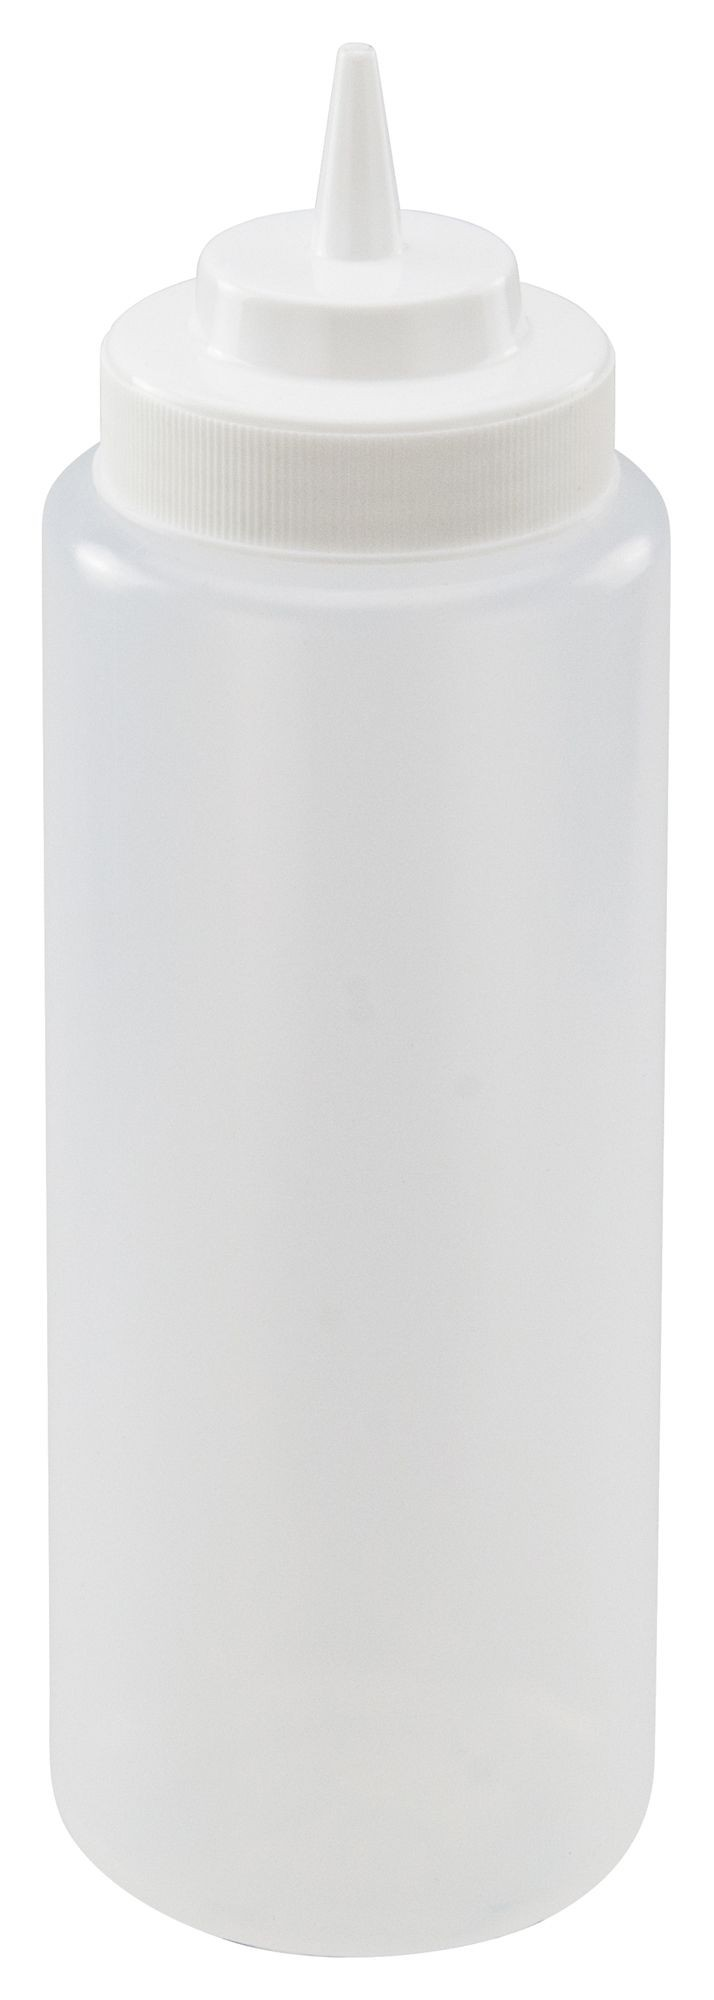 Winco PSW-32 Clear Plastic 32 oz. Wide-Mouth Squeeze Bottle